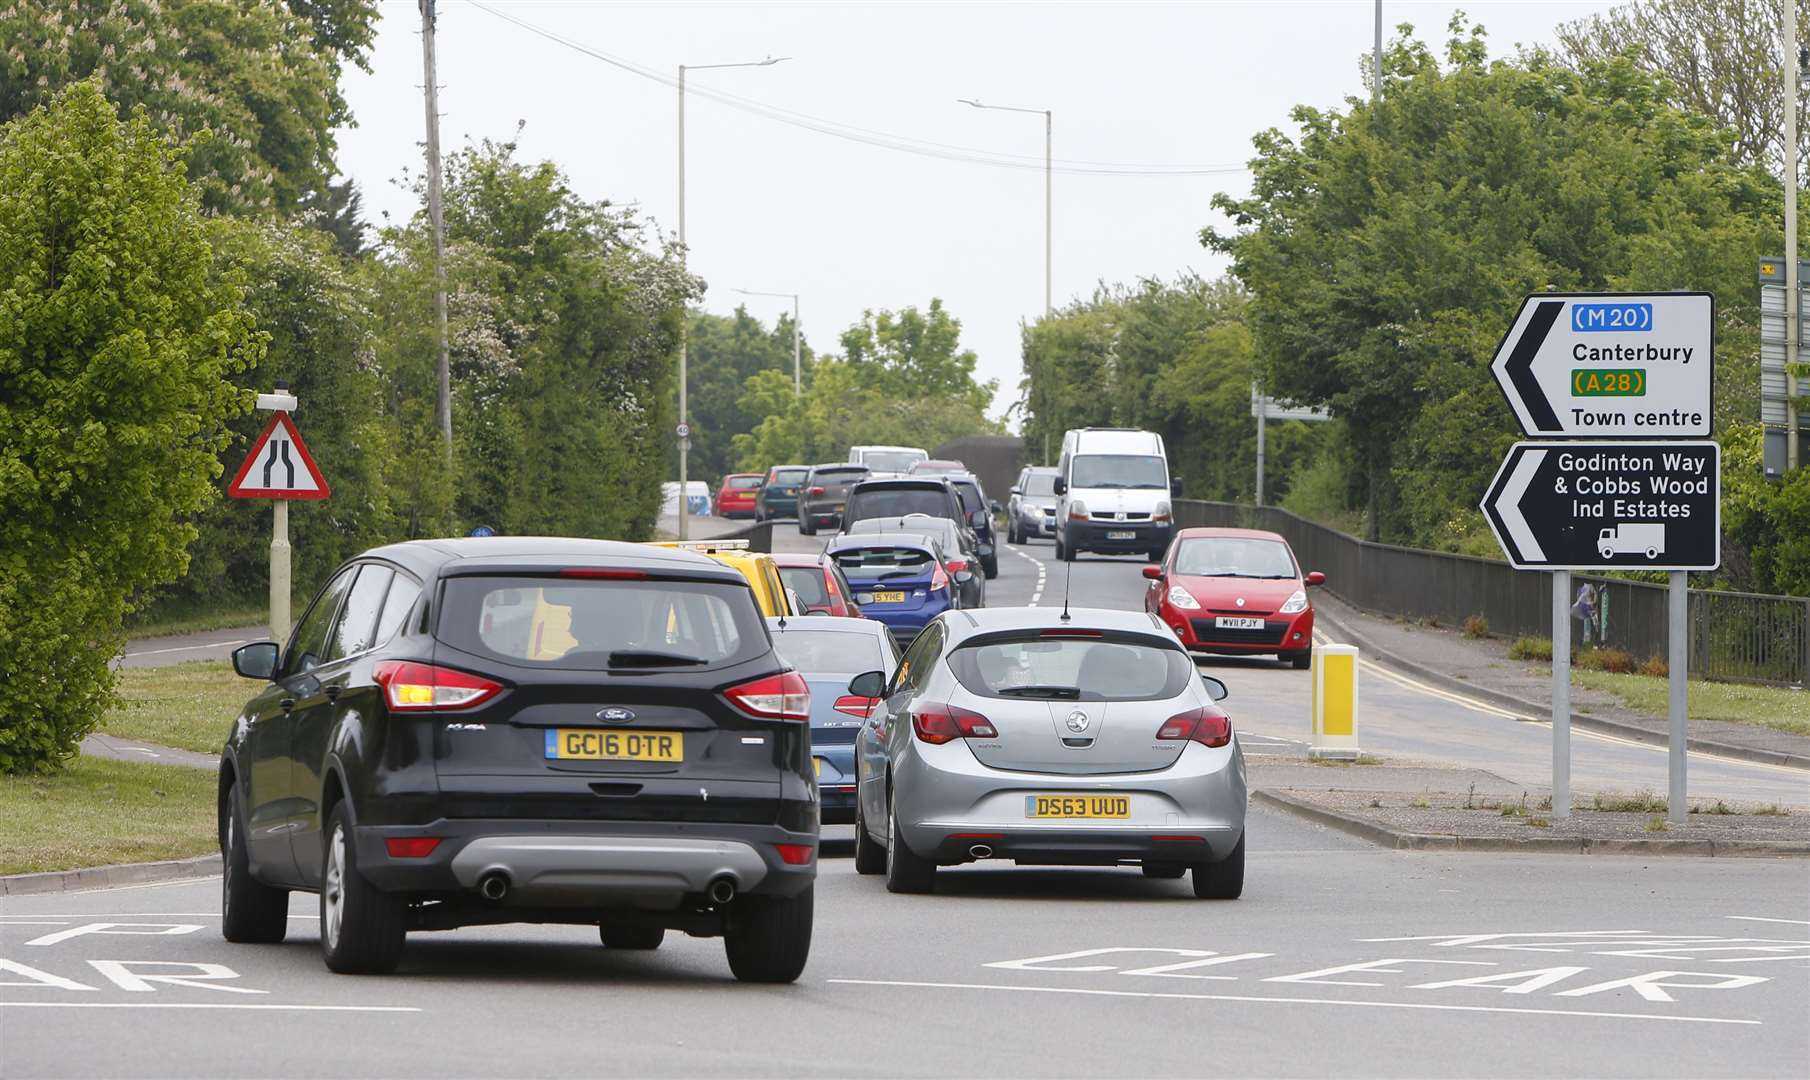 Work to convert the A28 Chart Road into a dual carriageway has been delayed until at least 2022